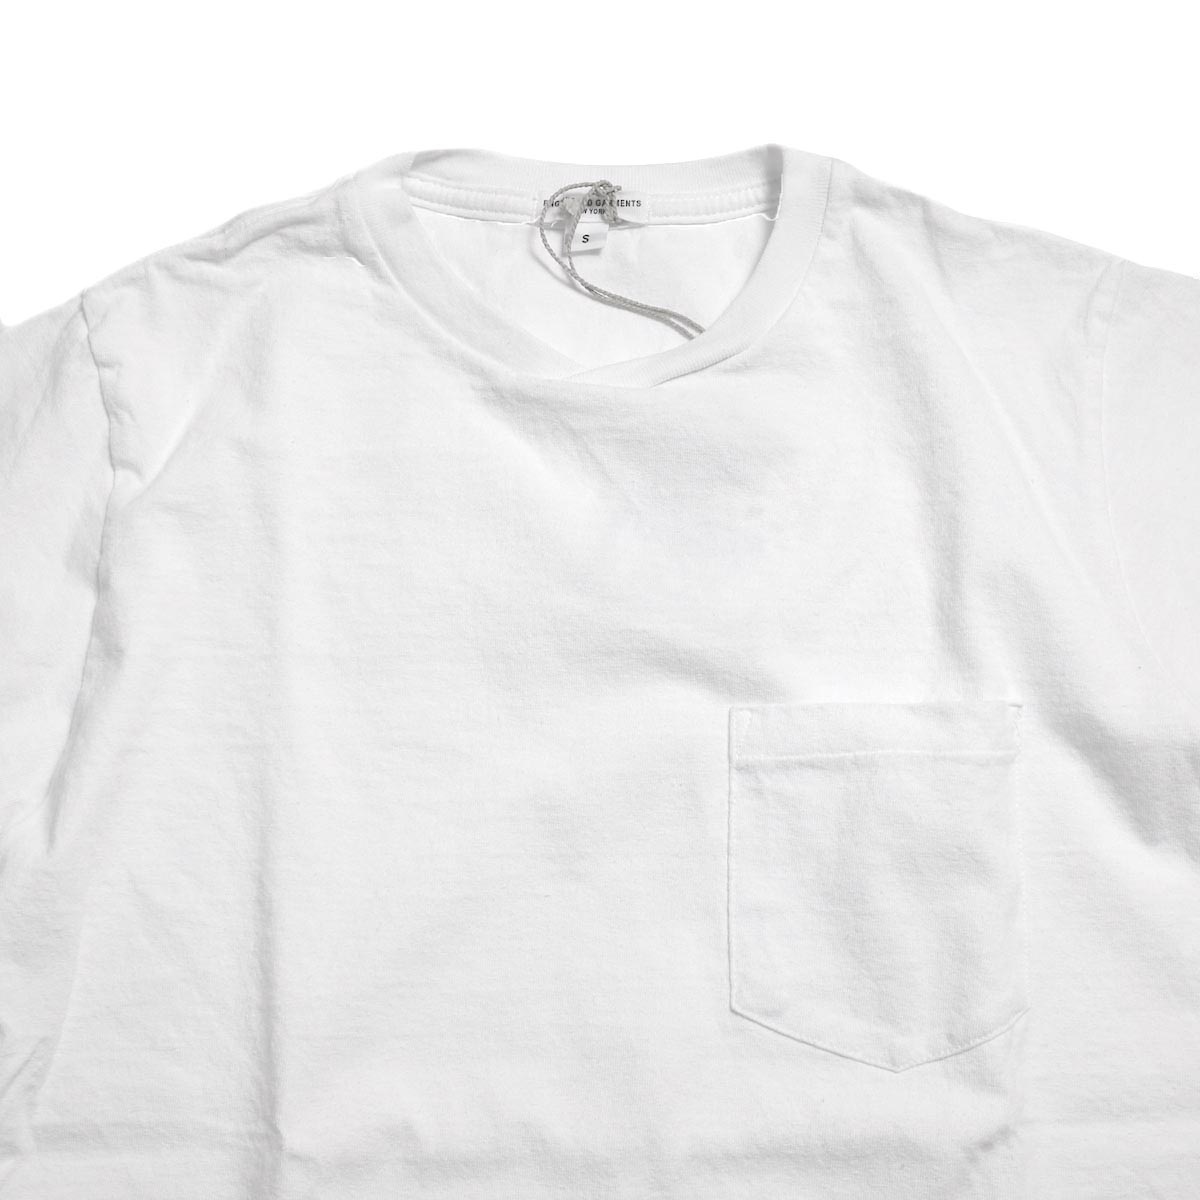 ENGINEERED GARMENTS Workaday / Crossover Neck Pocket Tee -Whiteクロスネック